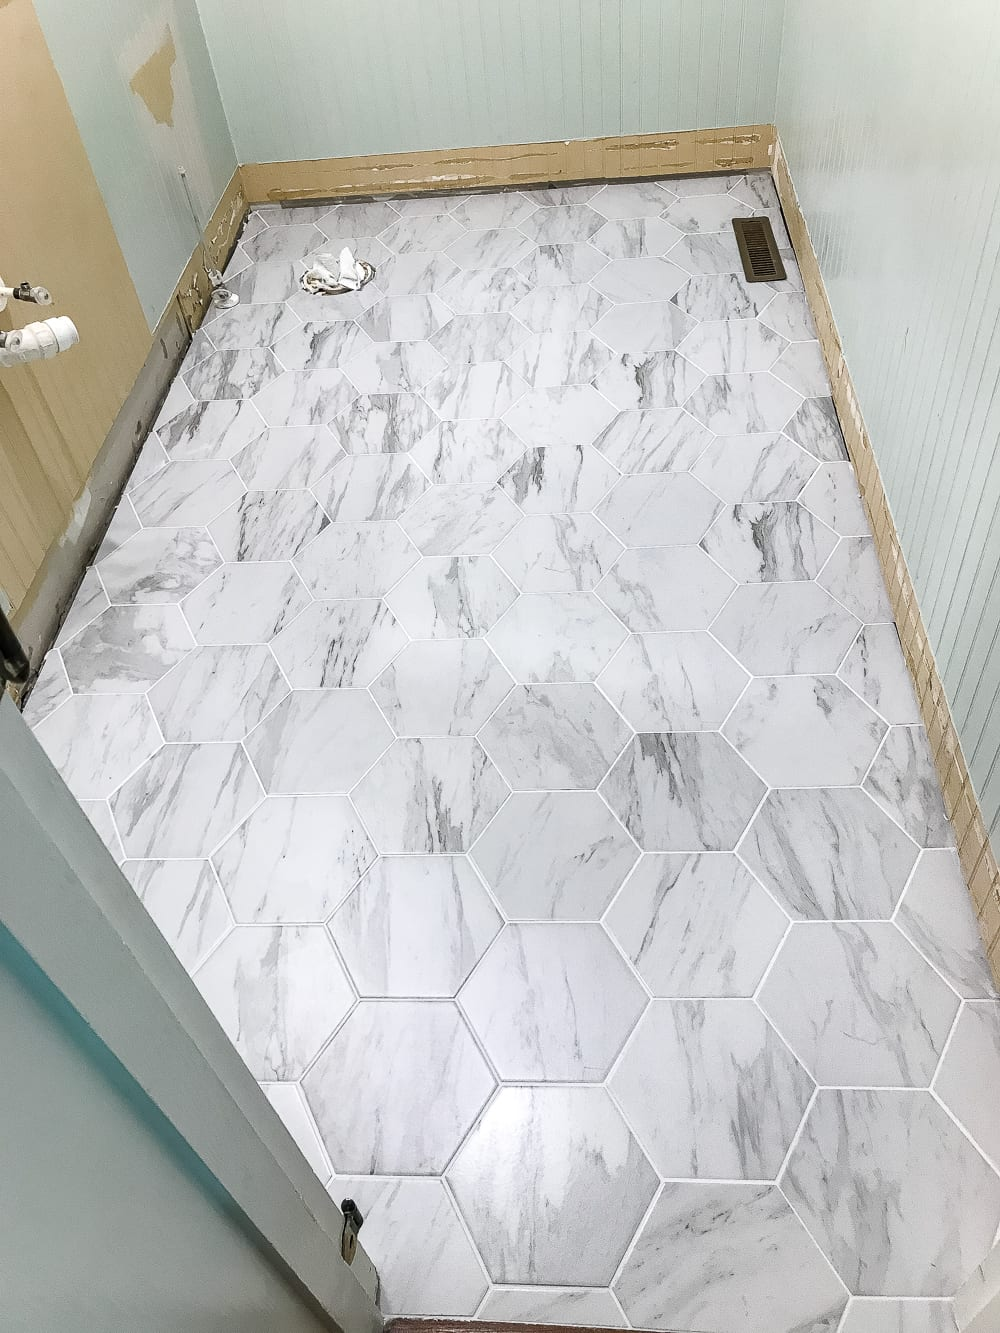 Powder room makeover faux marble tile floor bless 39 er house for Fake tile floor